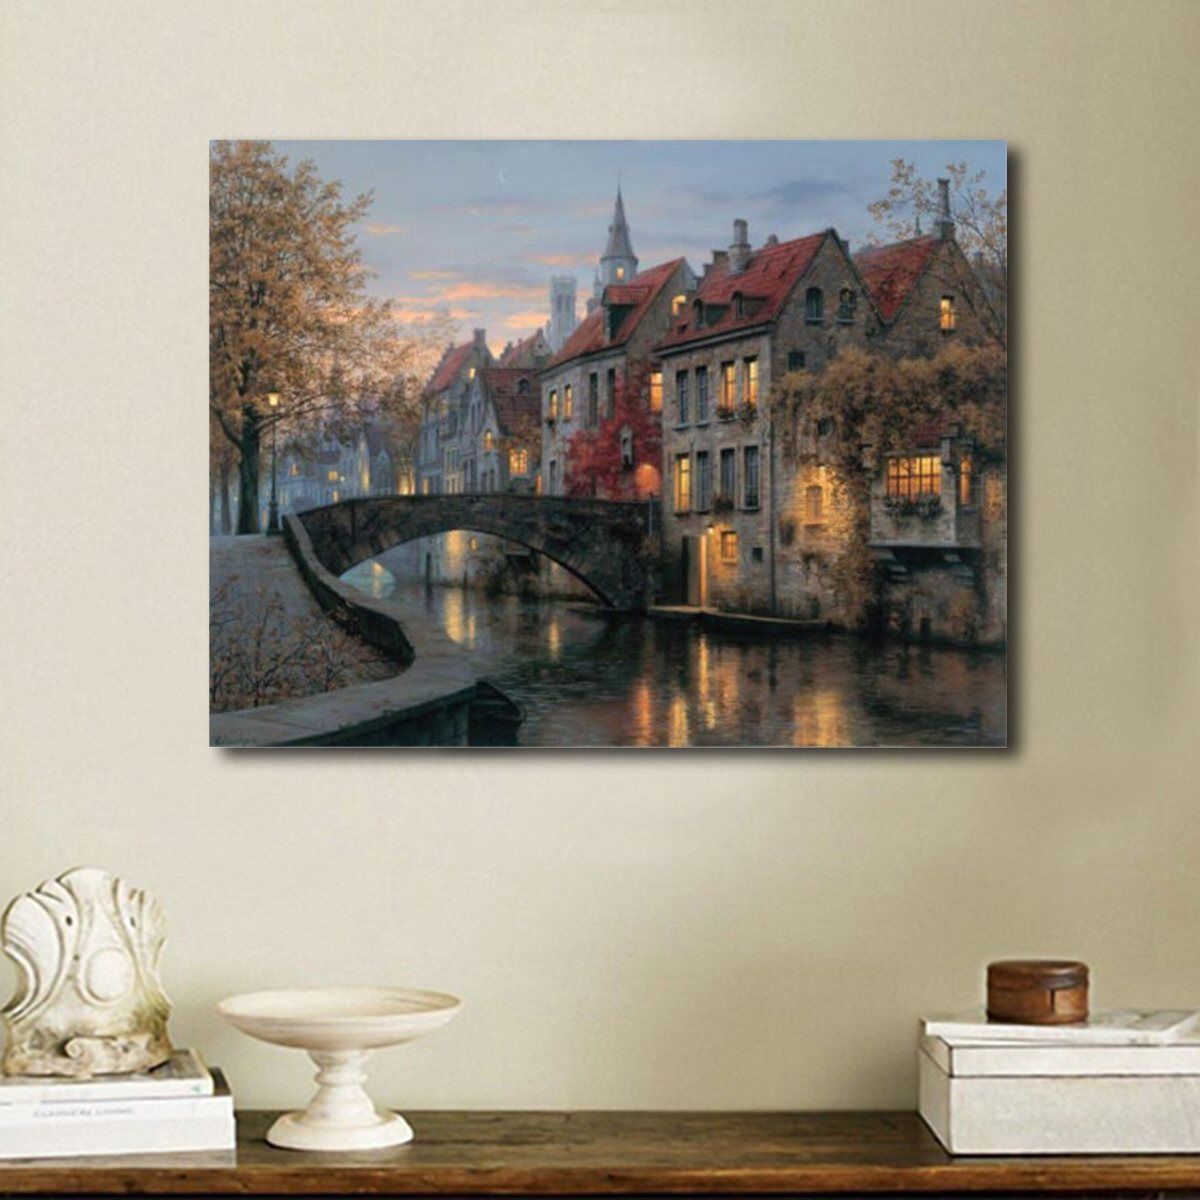 Modern river house canvas painting 40x30cm scenic pictures for Decorative mural painting